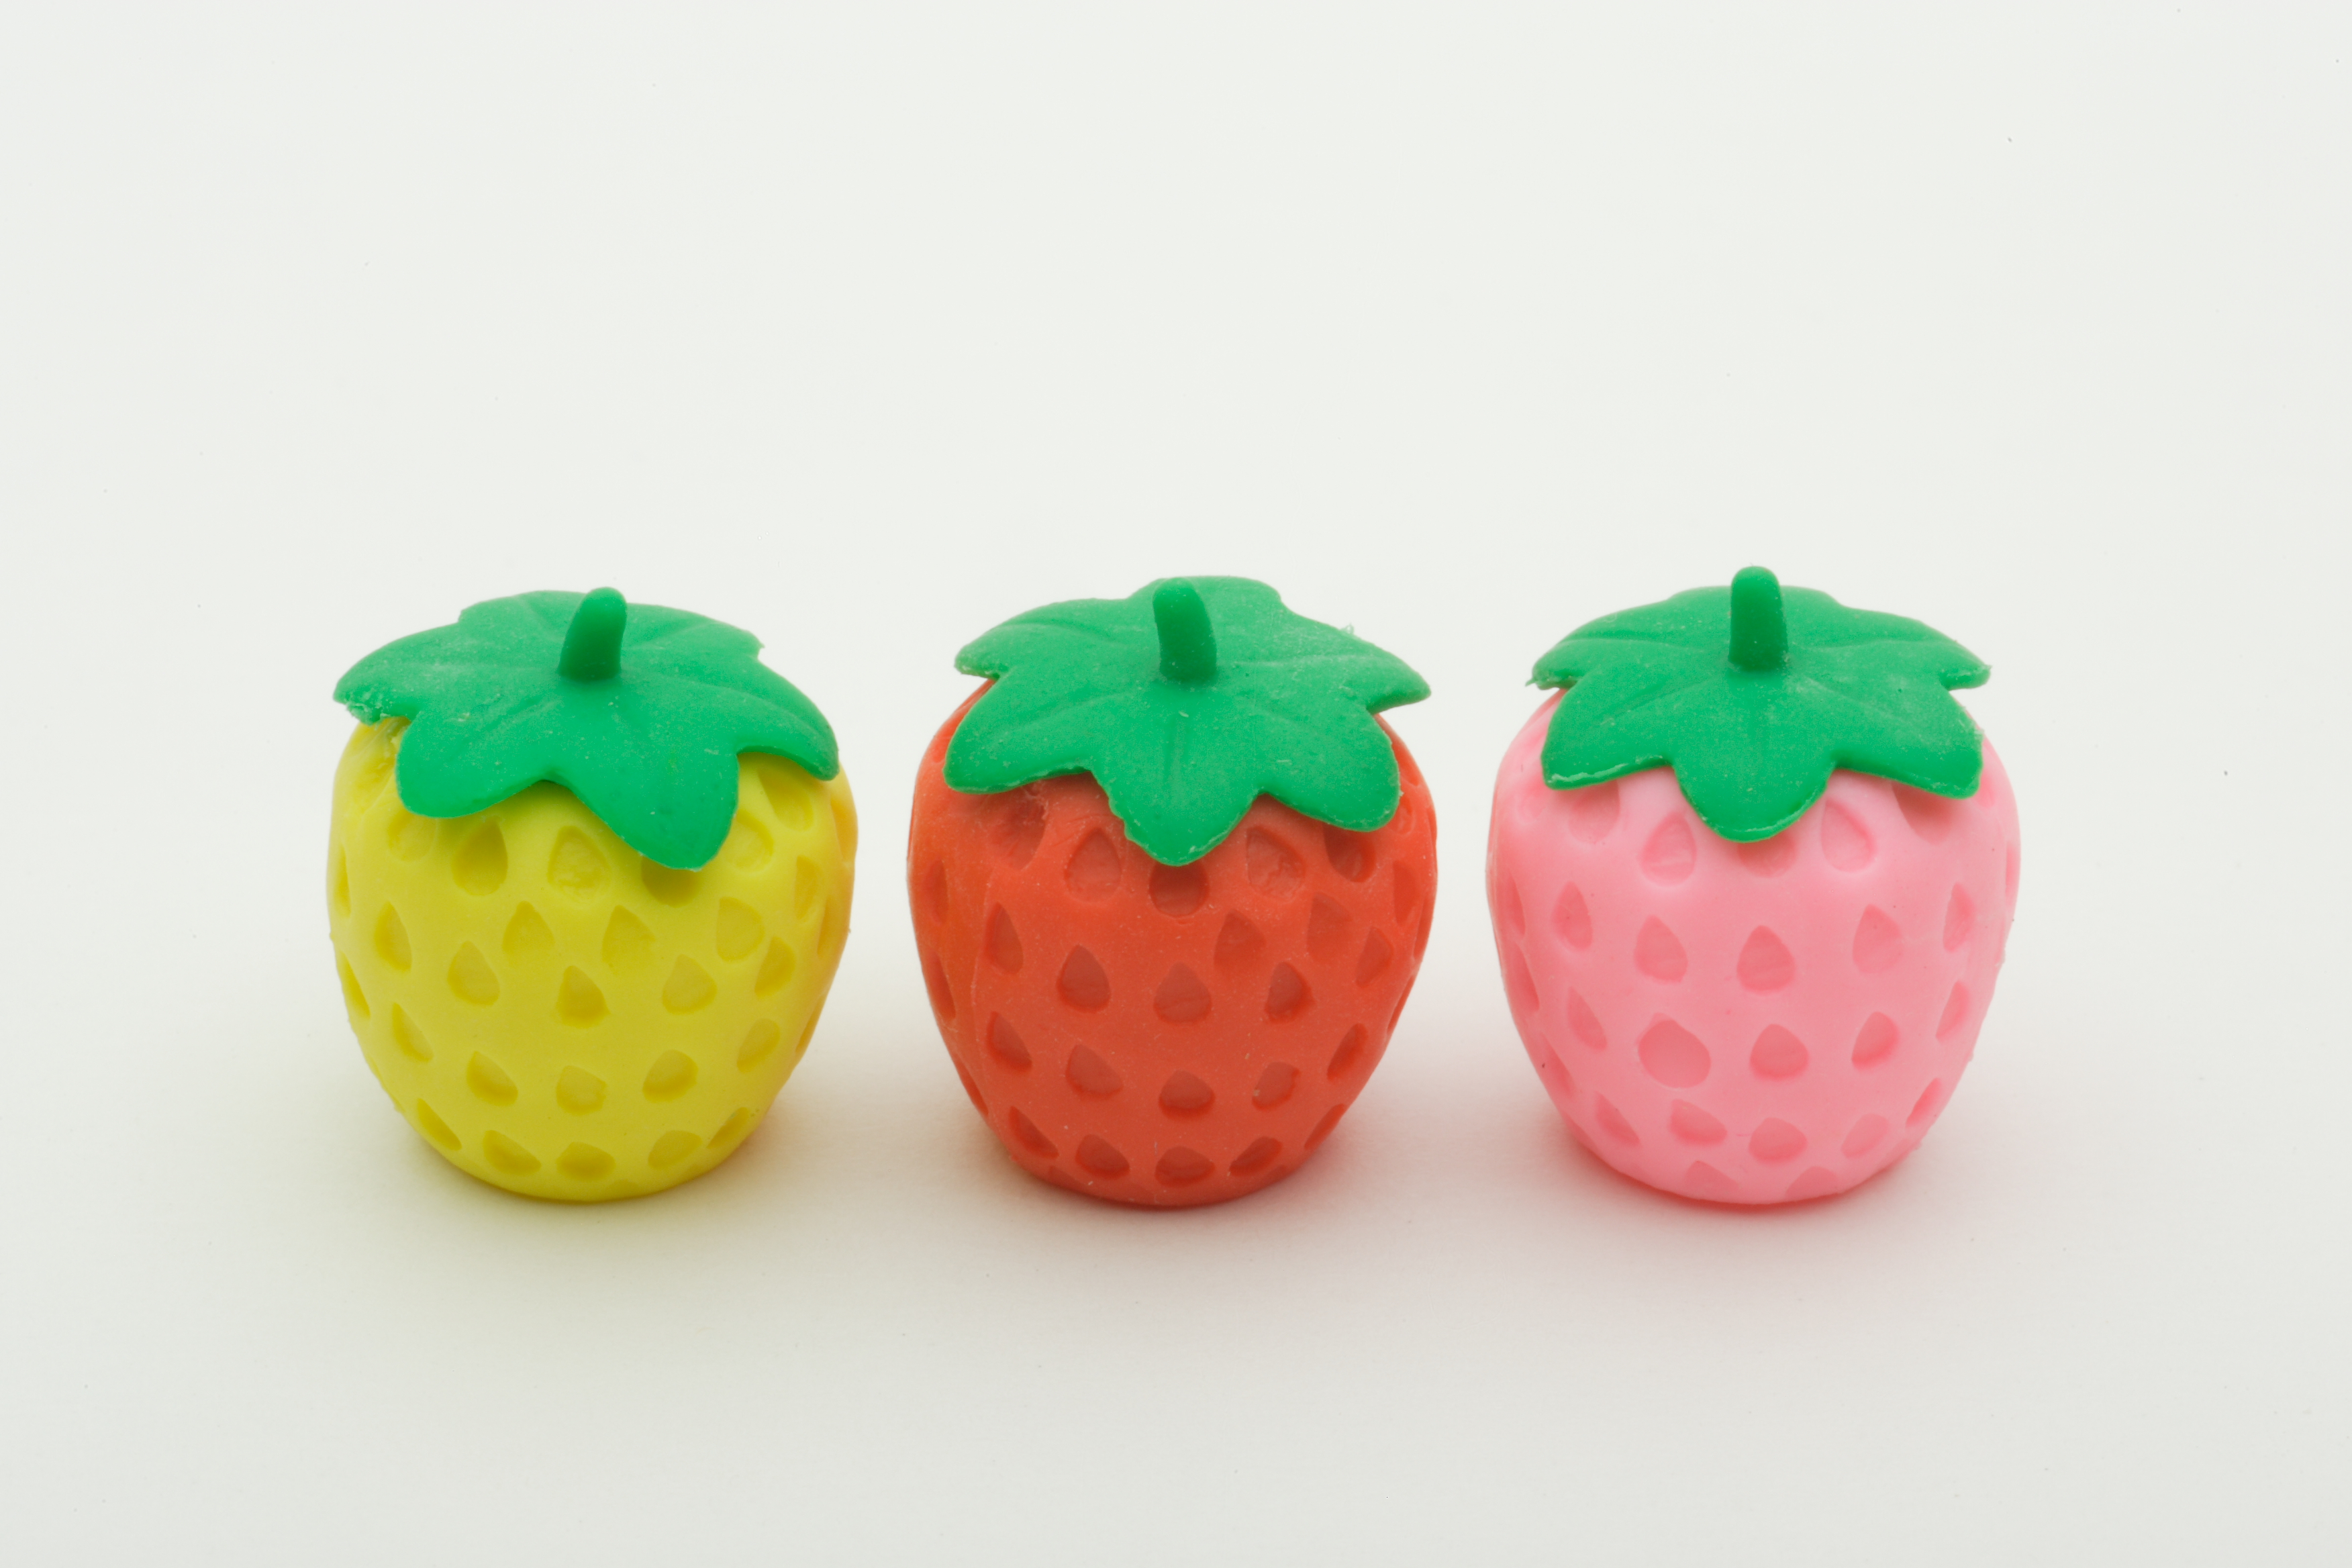 245 3 pcs of Pencil Top Erasers Strawberry